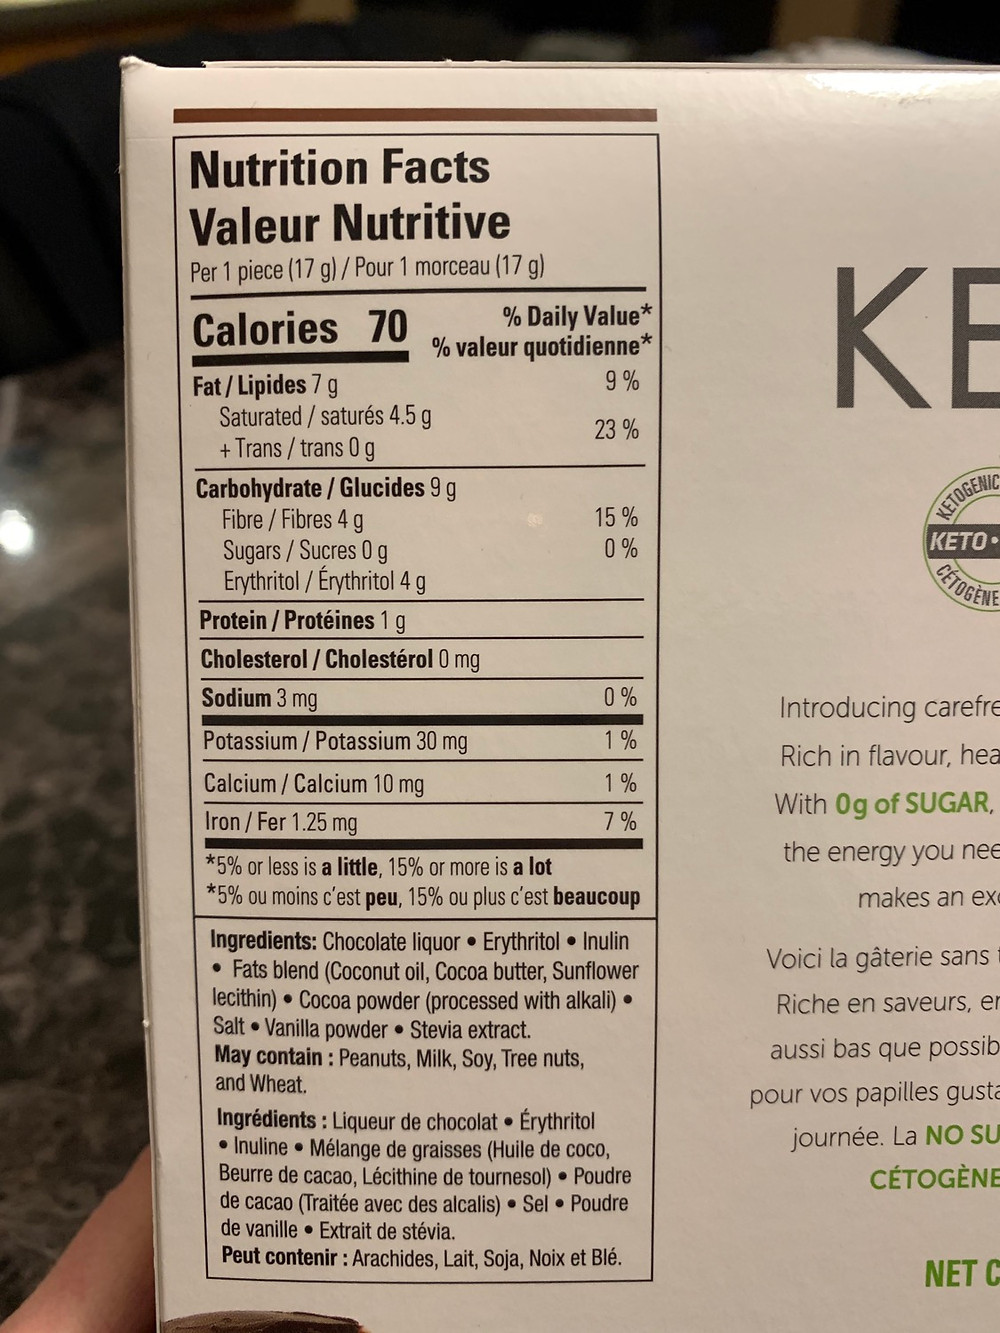 Costco NoSugar Company Keto Bomb Nutrition and Ingredients